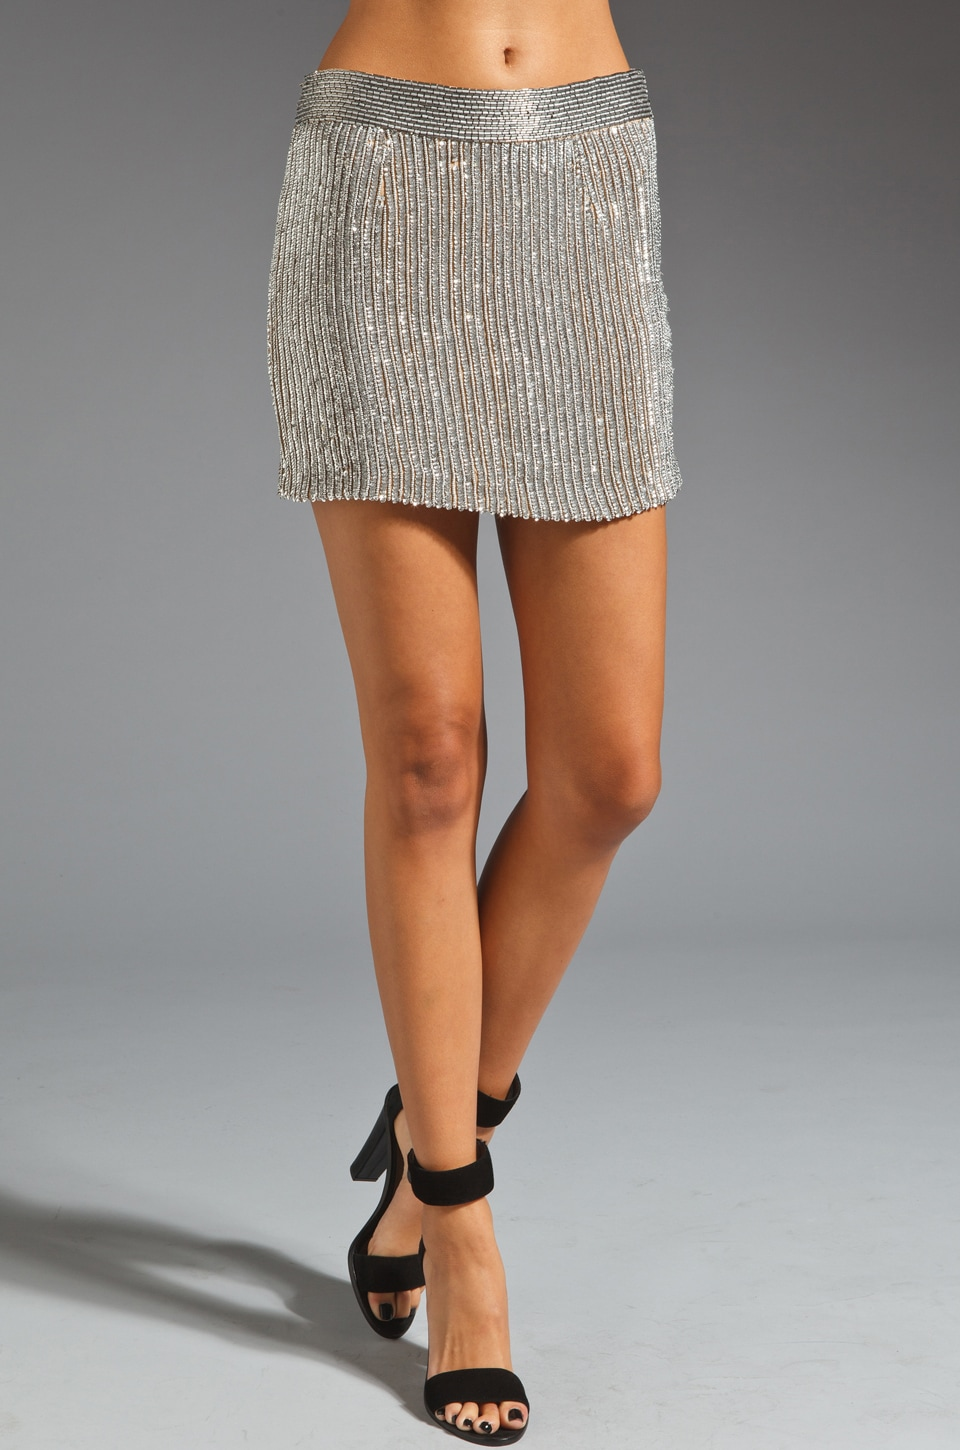 Karina Grimaldi Amy Beaded Mini Skirt in Silver